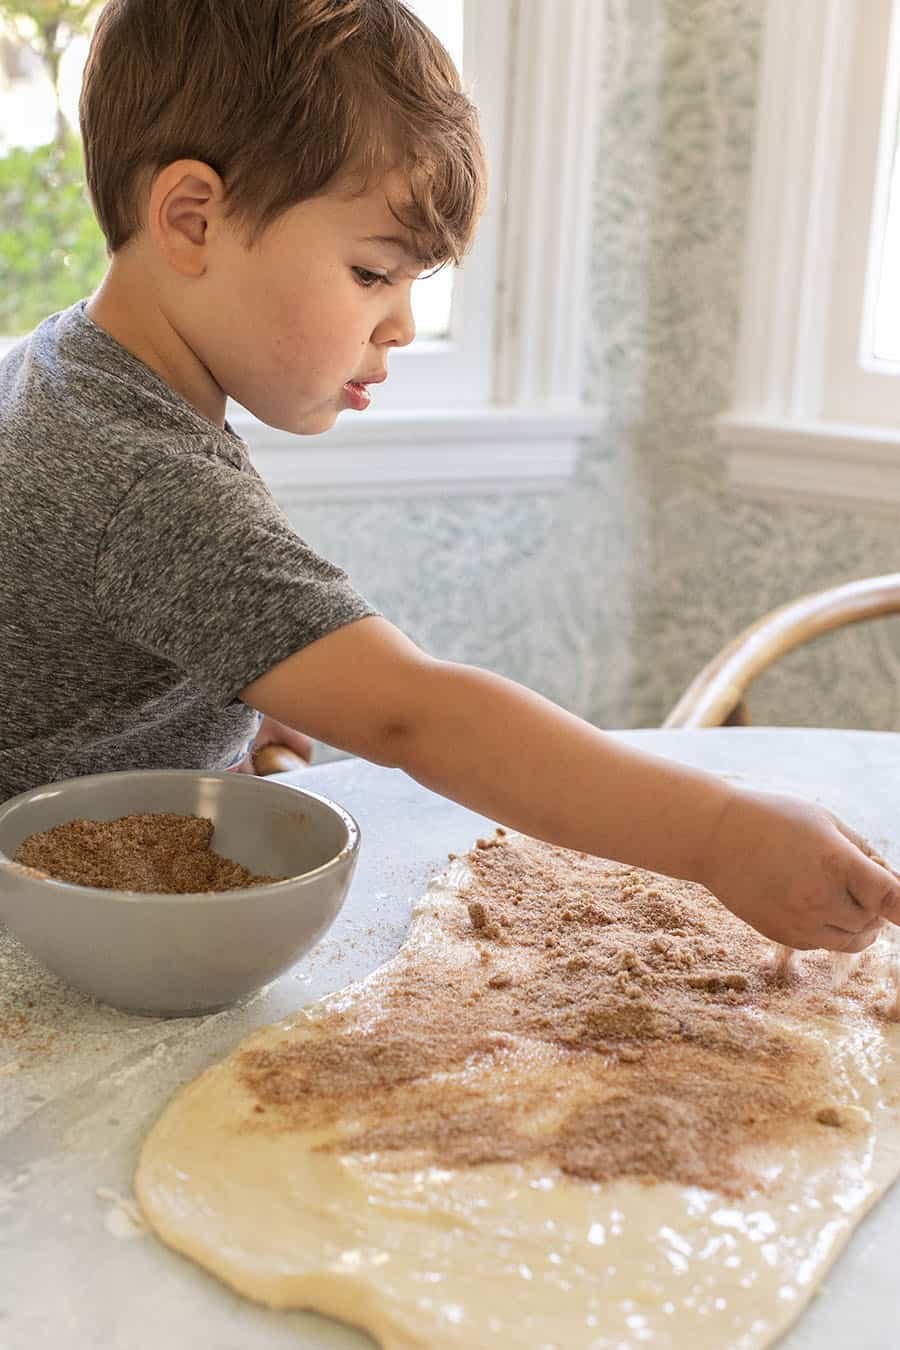 Little boy making cinnamon rolls